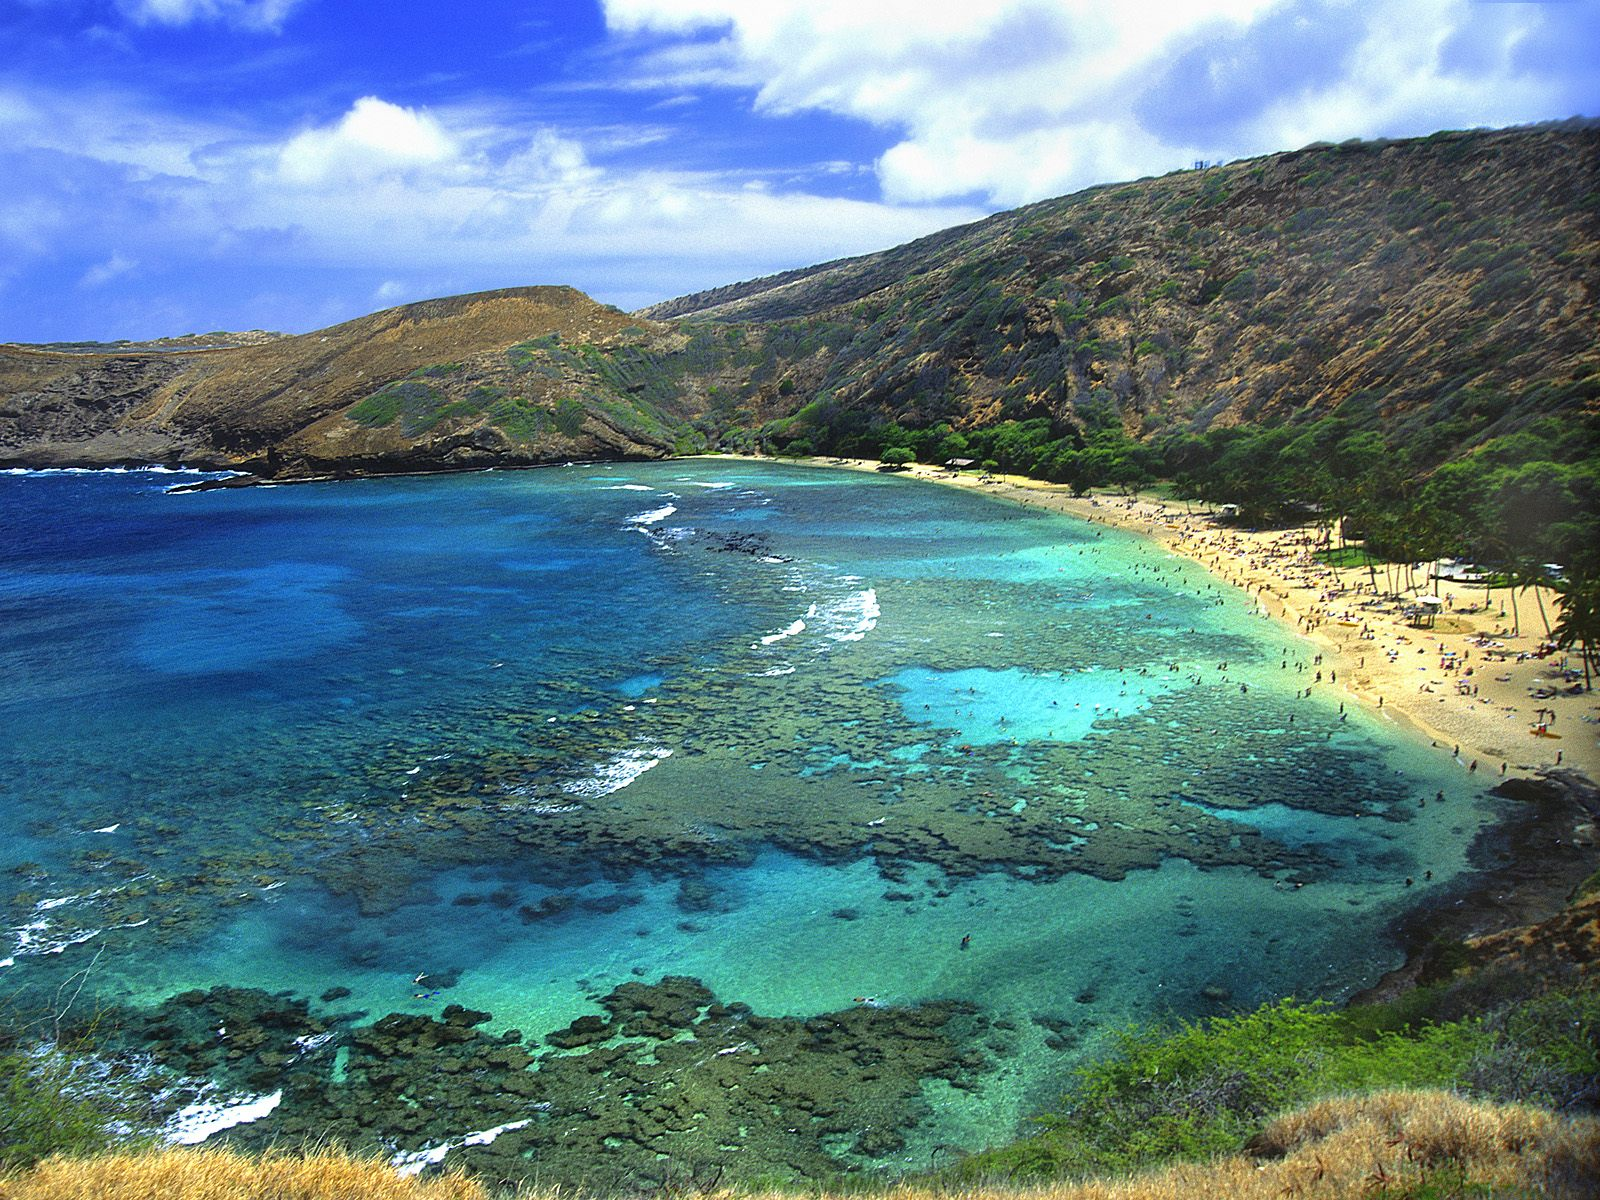 A few things about the main Hawaiian islands